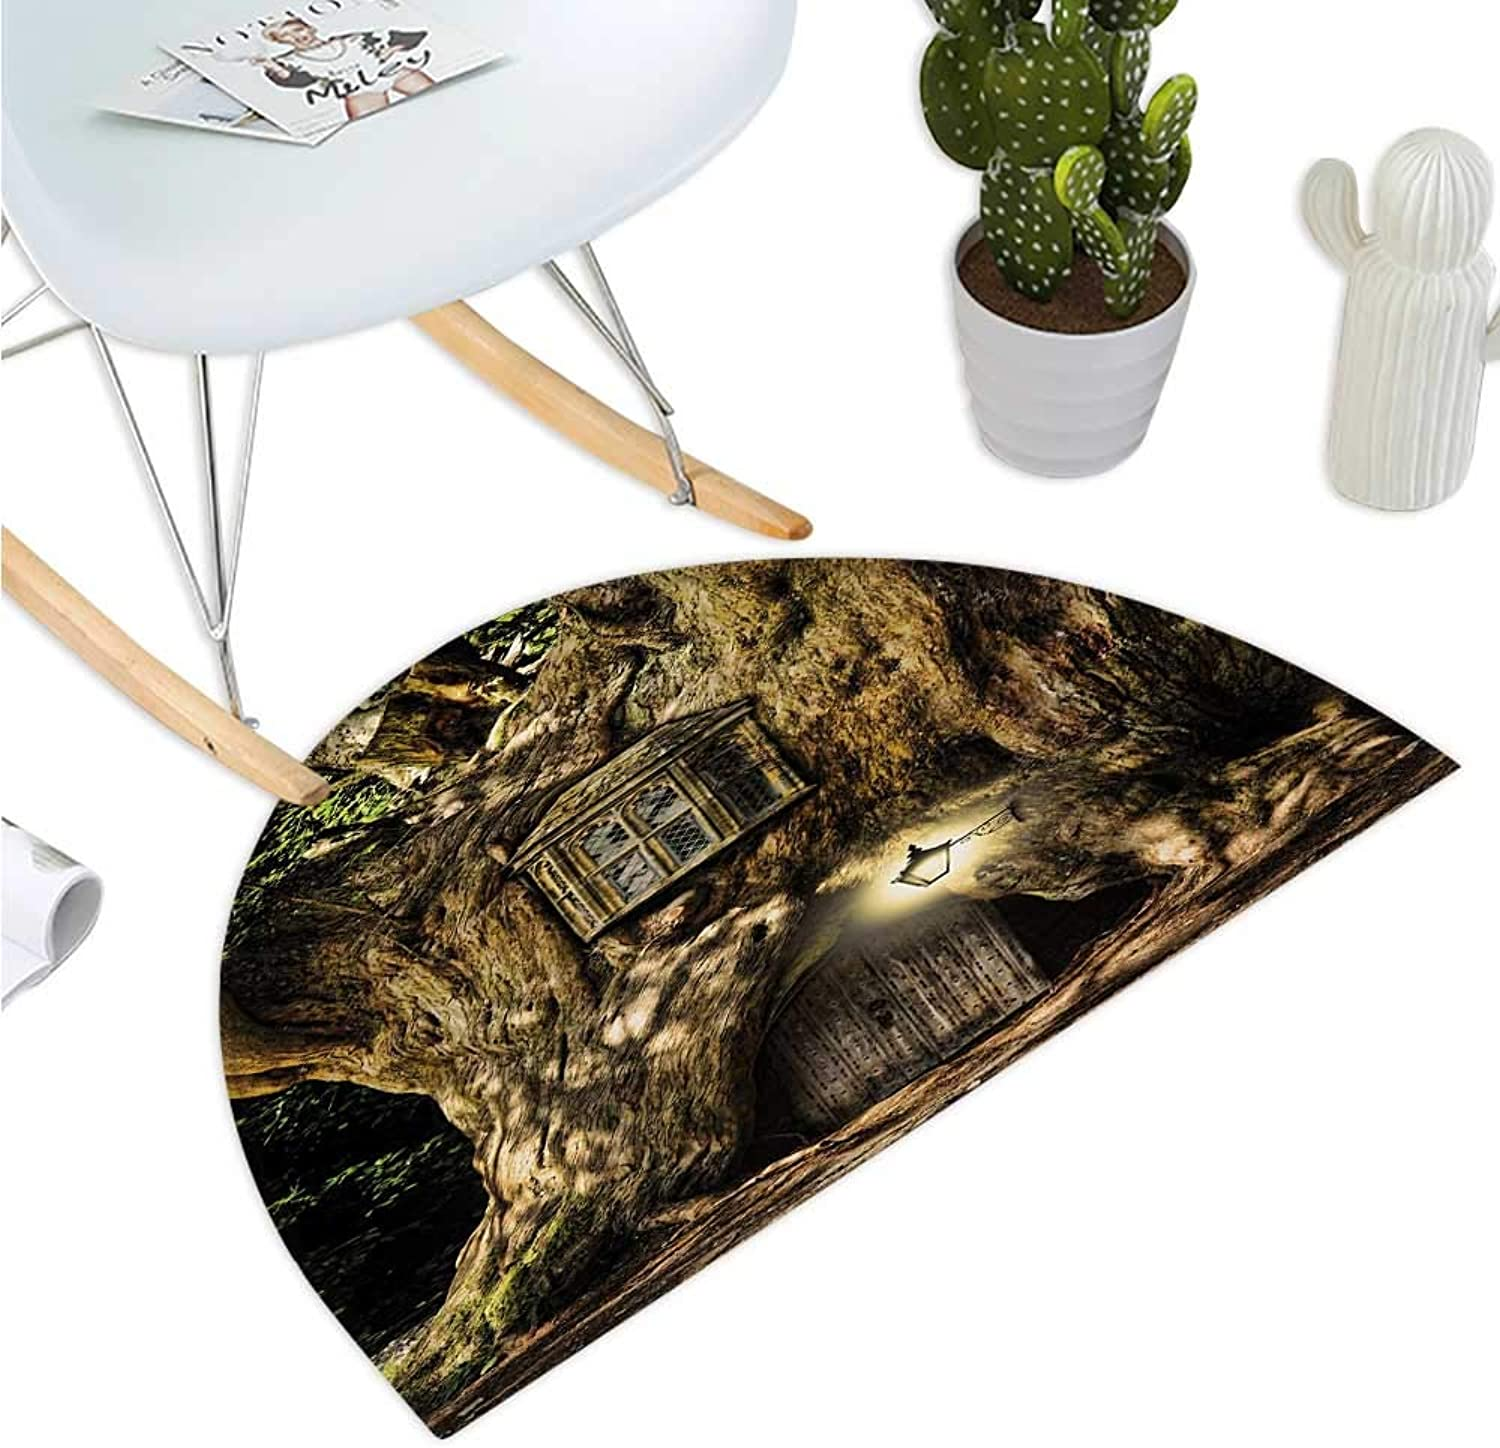 Fantasy Semicircular Cushion Fairytale House in Tree Trunk in Forest with Lanterns Folk Stories Themed Design Entry Door Mat H 43.3  xD 64.9  Umber Brown